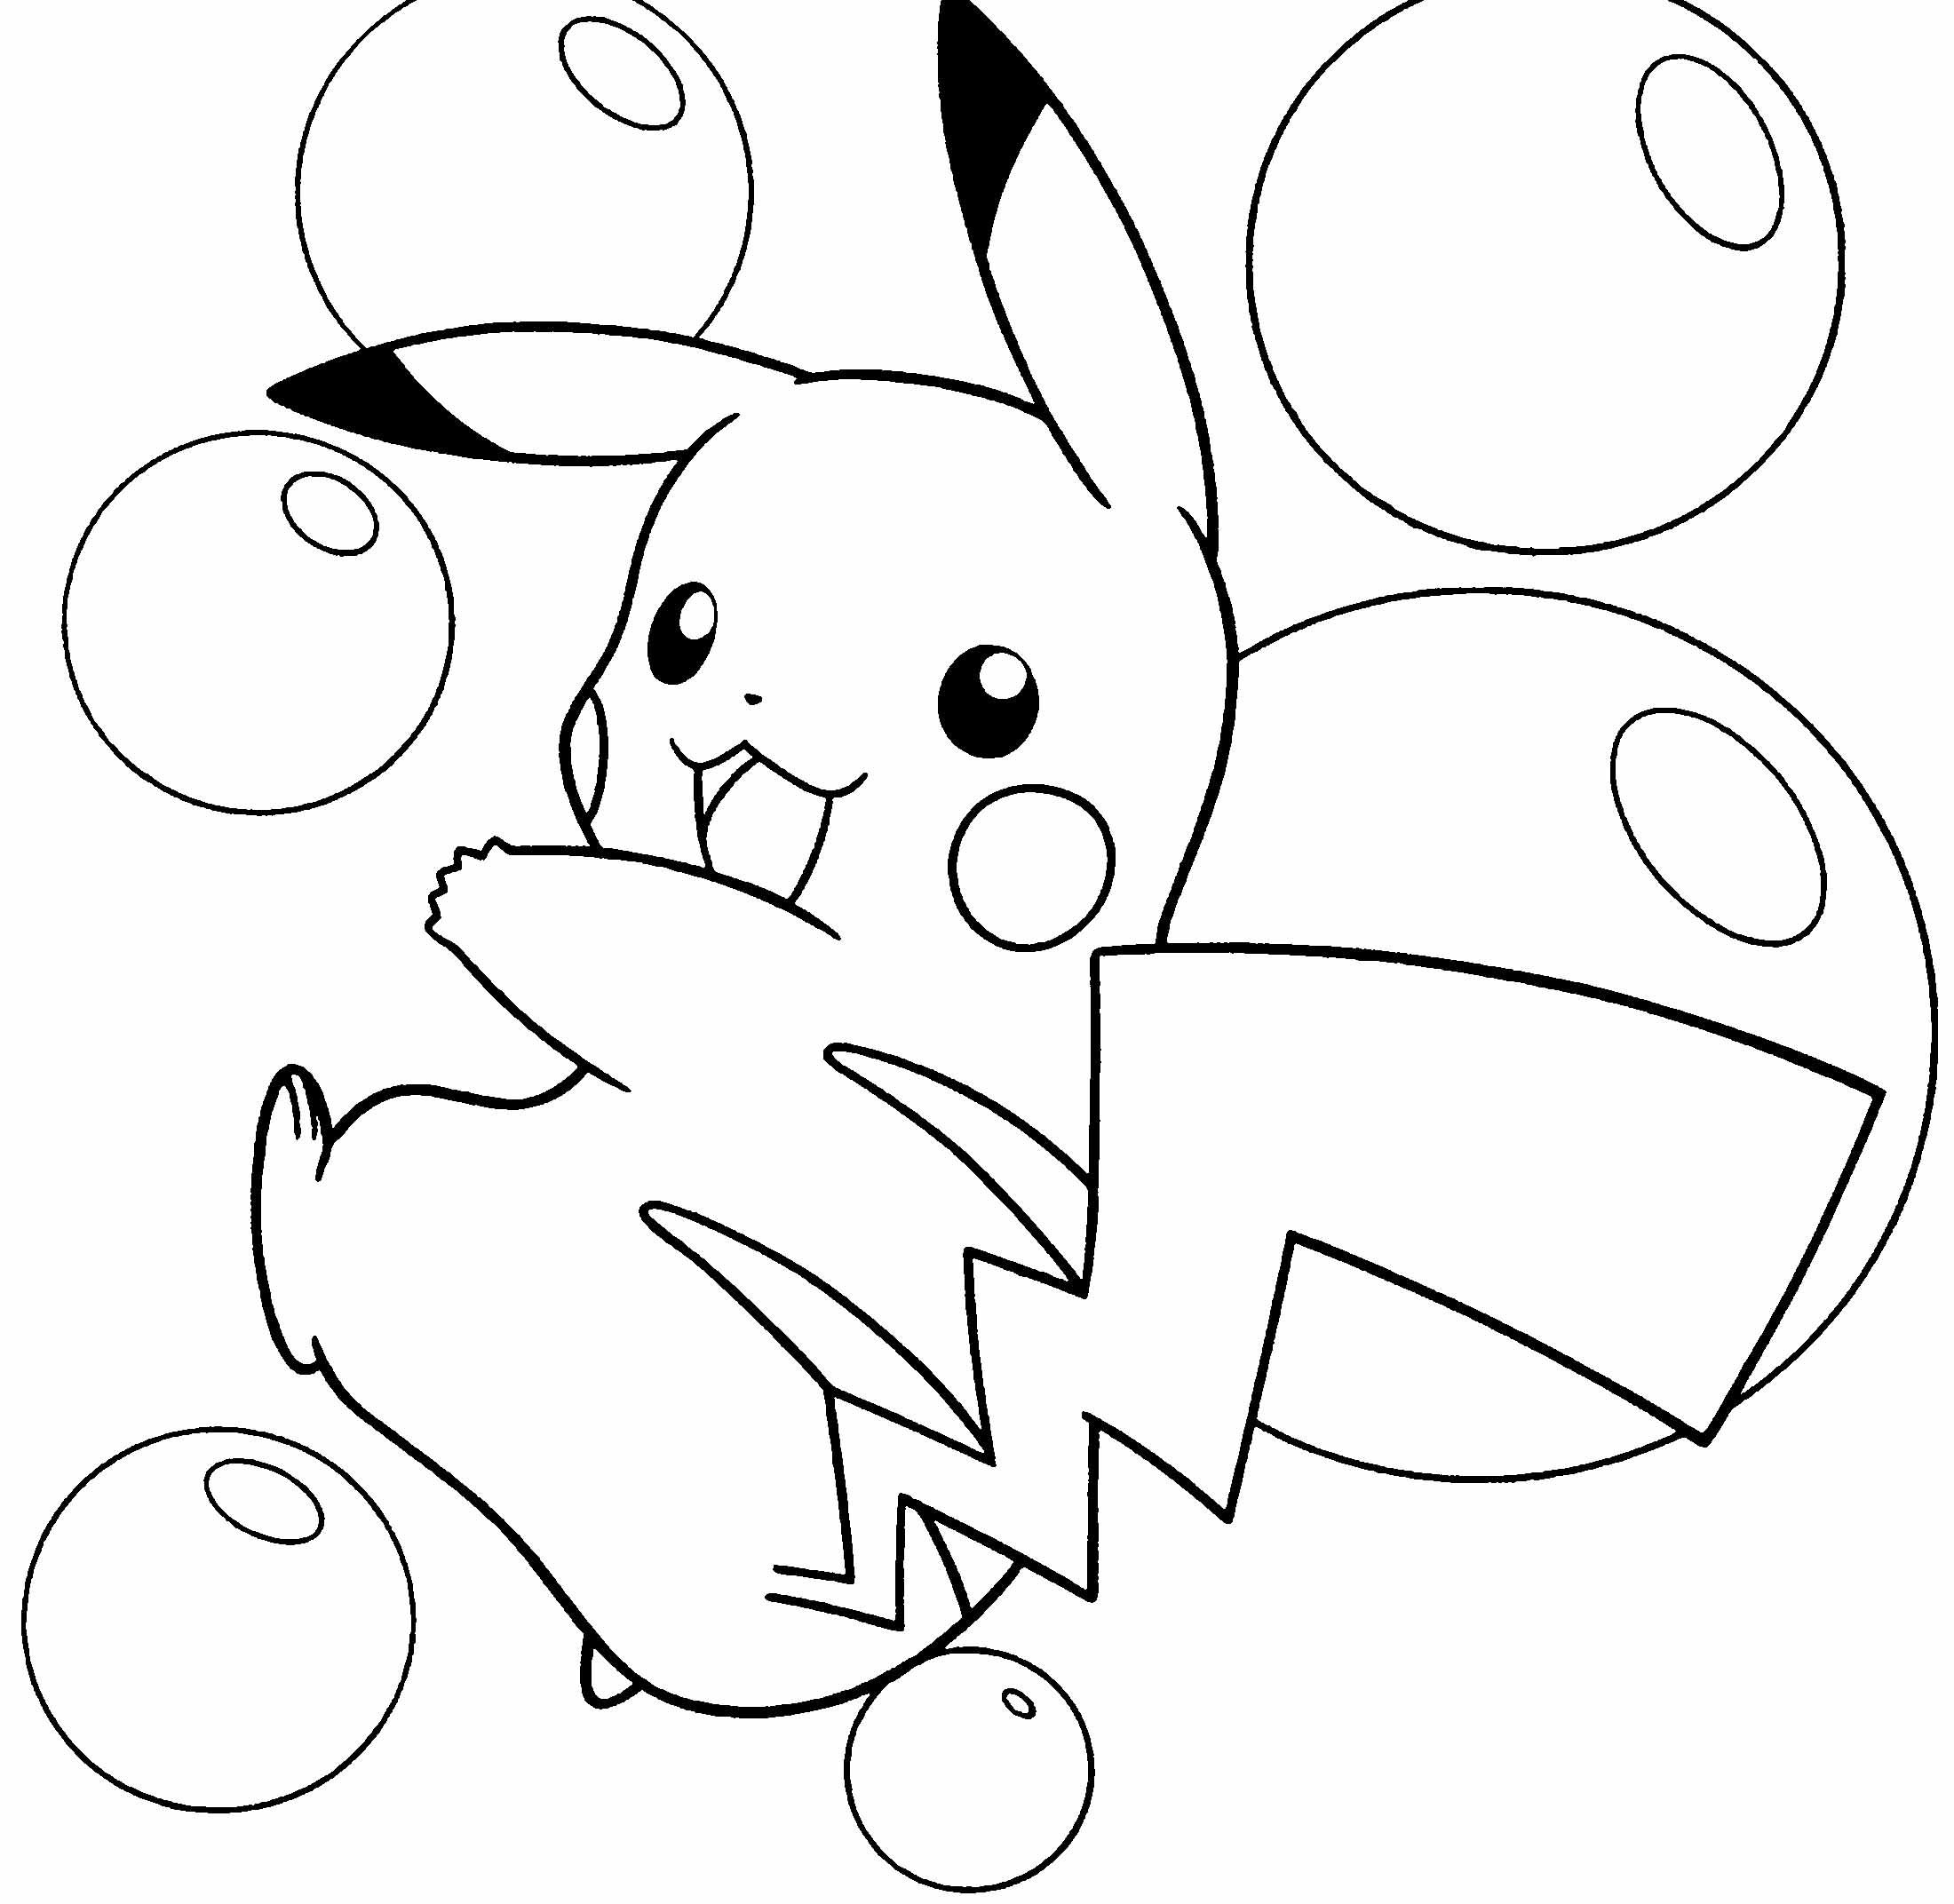 Free coloring pages of pokemon x and y - Pikachu Coloring Pages Free Large Images